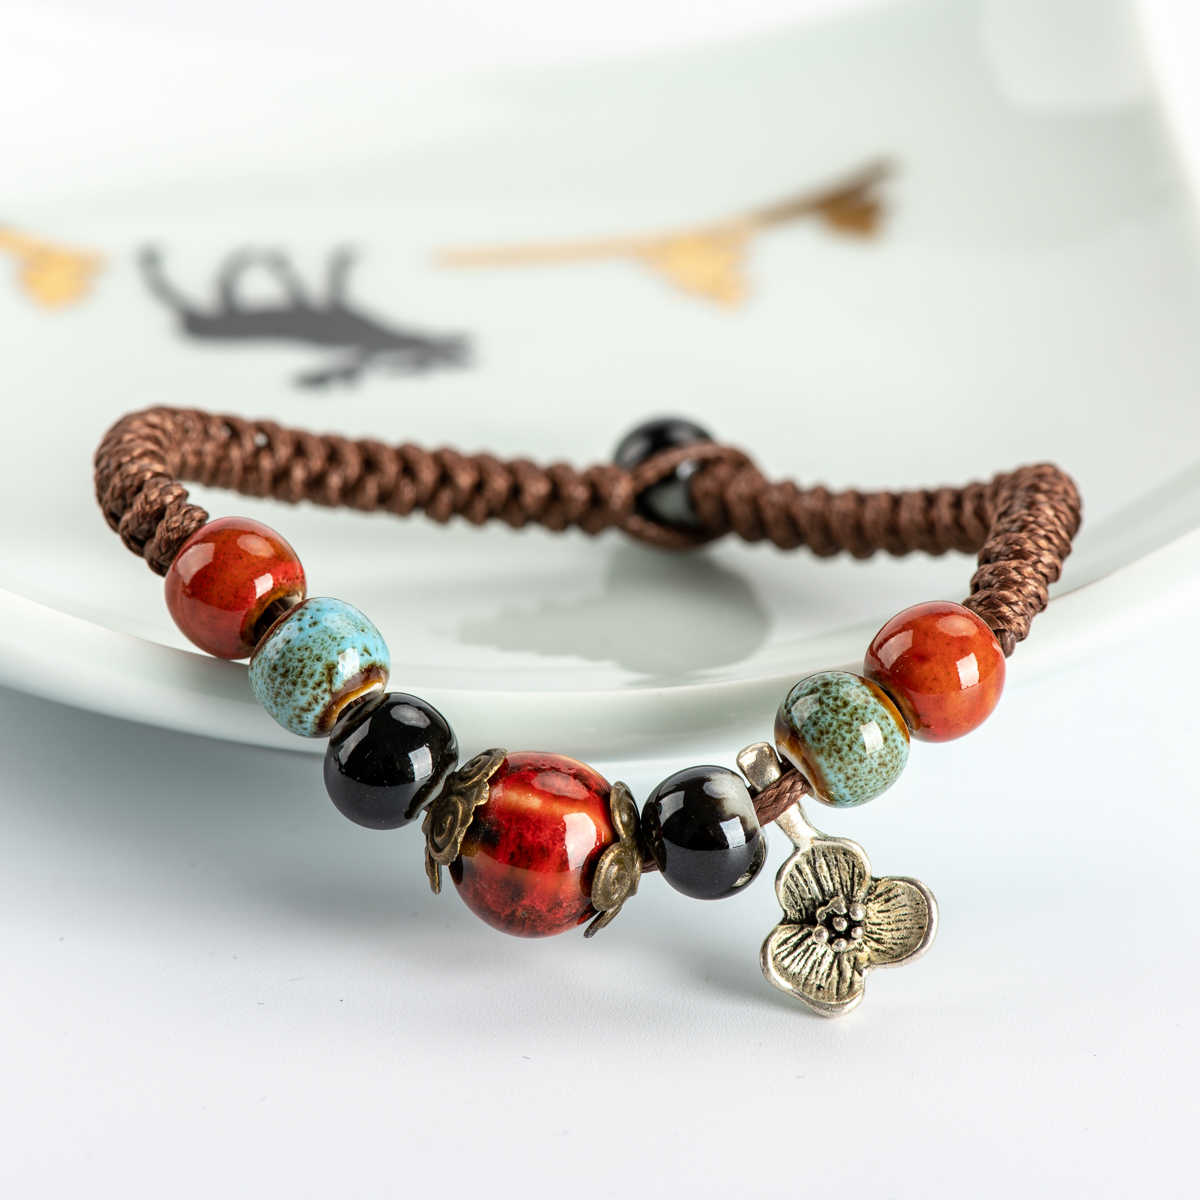 Porcelain Rope Bracelets  Bohemian Wrap  Ethnic ceramics Jewelry for ladies wholesale #HY561